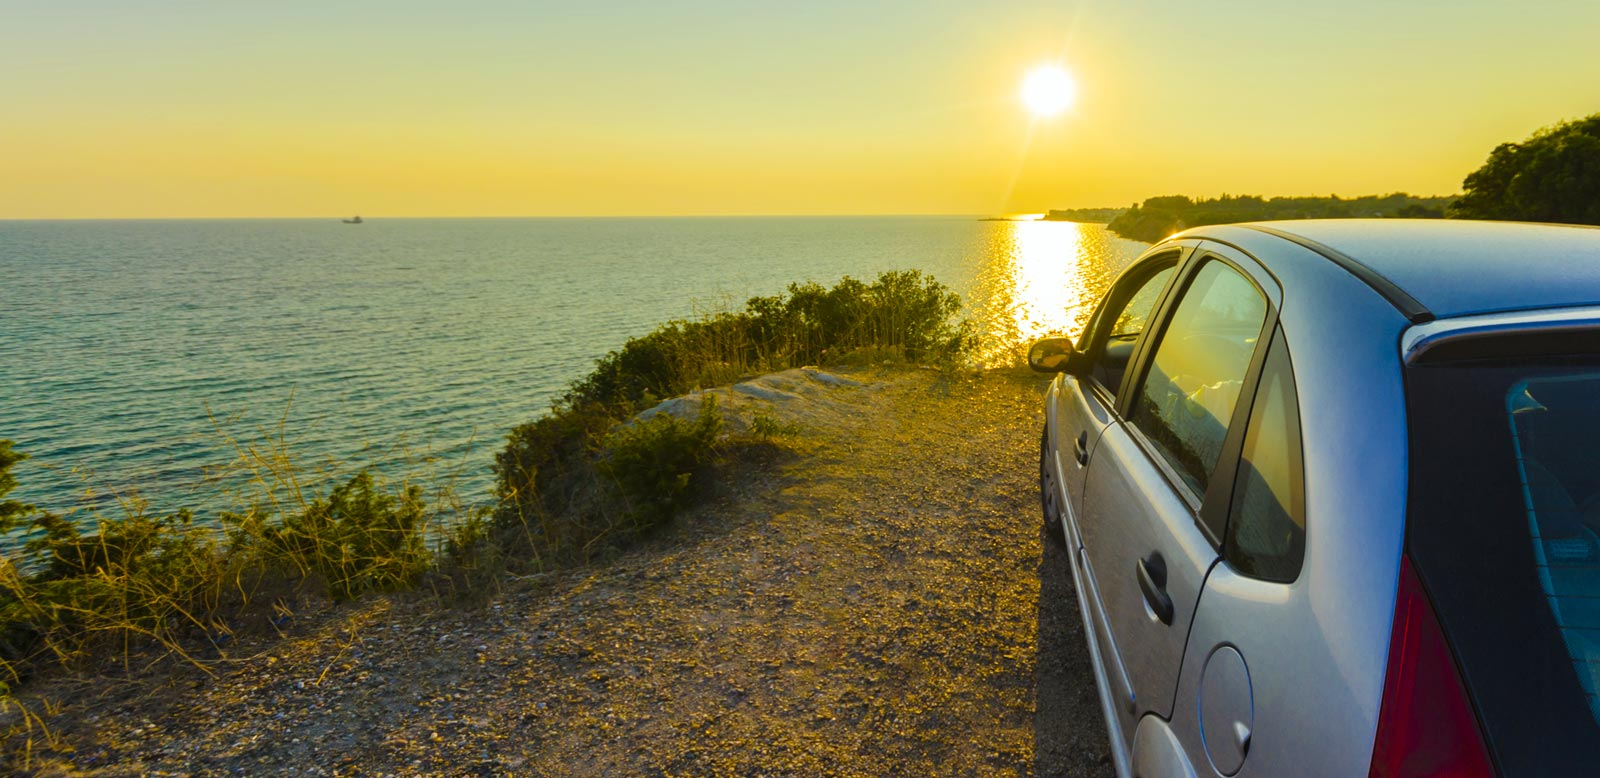 Looking for Automotive Window Film Service - we have you covered